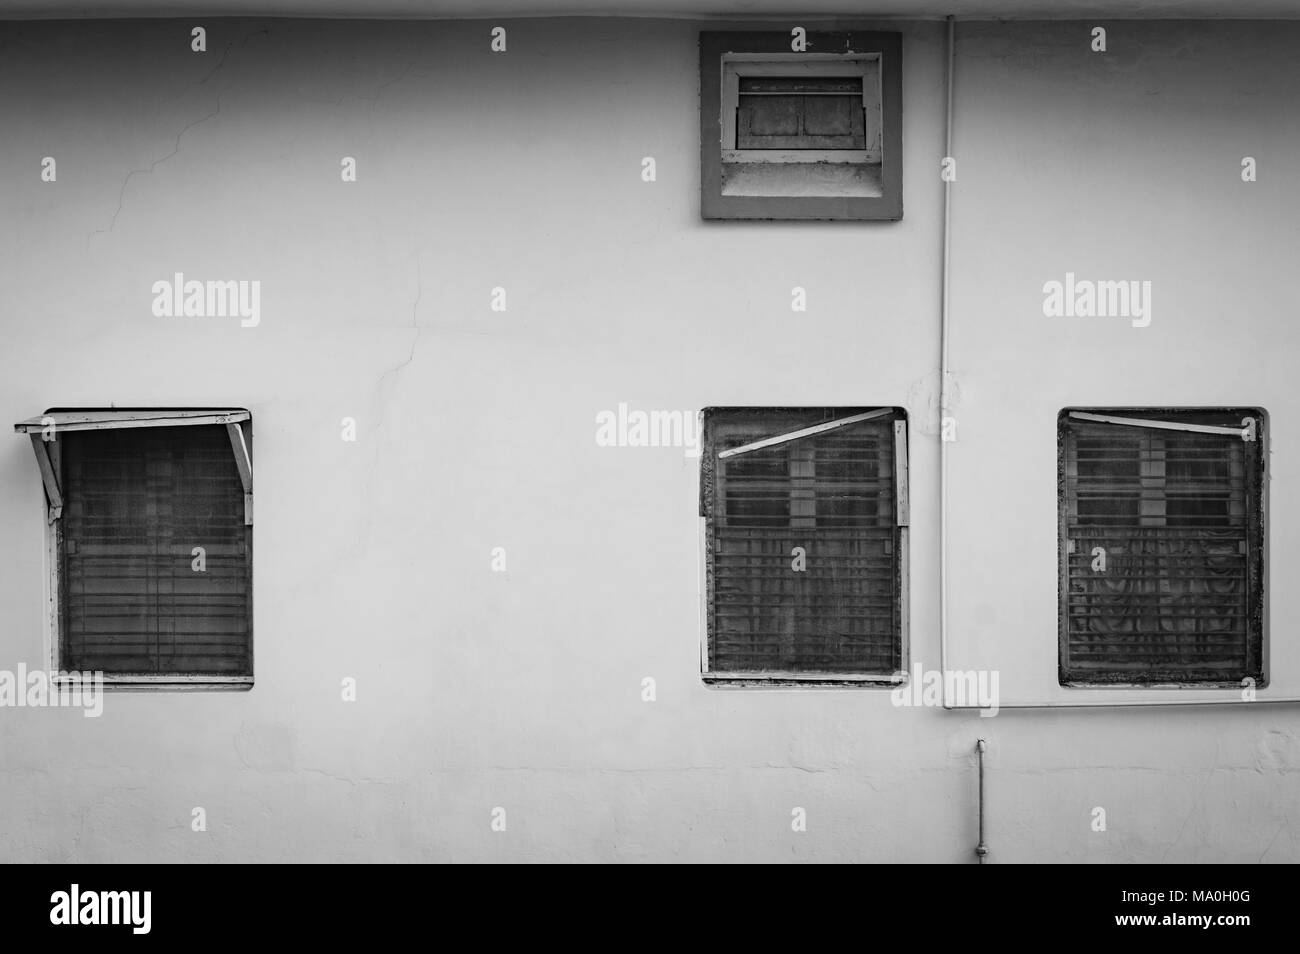 Architecturally symmetrical photograph of windows and pipes, Allahabad, Uttar Pradesh, India - Stock Image